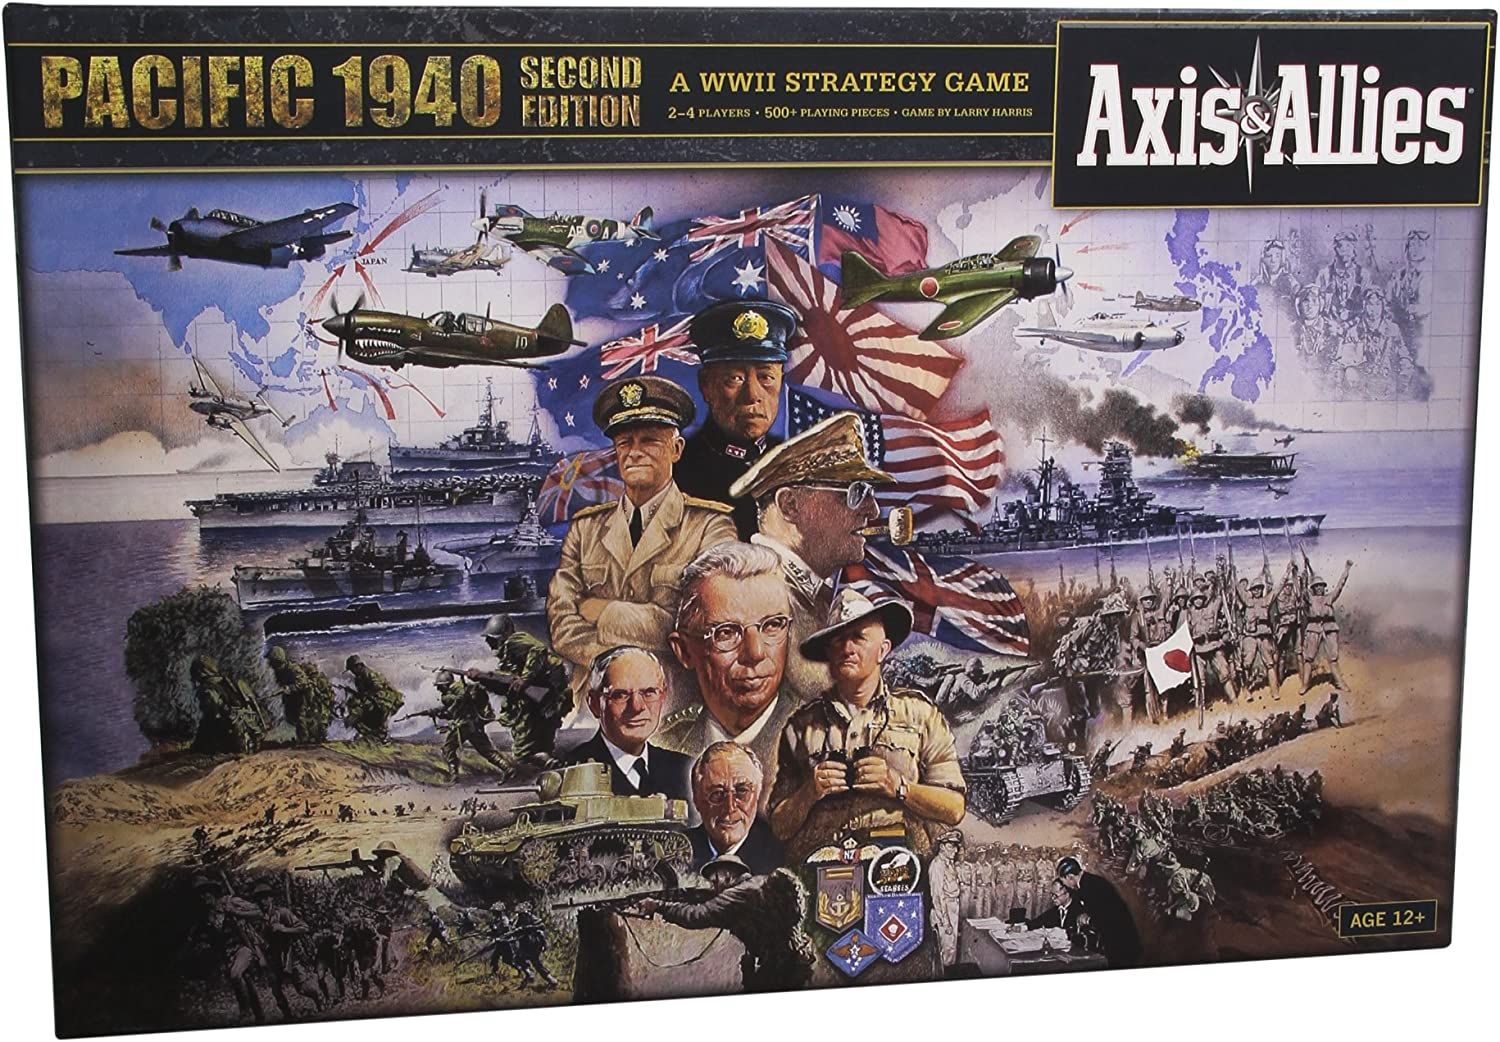 Avalon Hill / Wizards of the Coast A0626 - Juego de Mesa Axis & Allies: Pacific 1940 2nd Edition (Instrucciones en inglés): Axis & Allies Pacific 1940 2nd Edition: Amazon.es: Juguetes y juegos